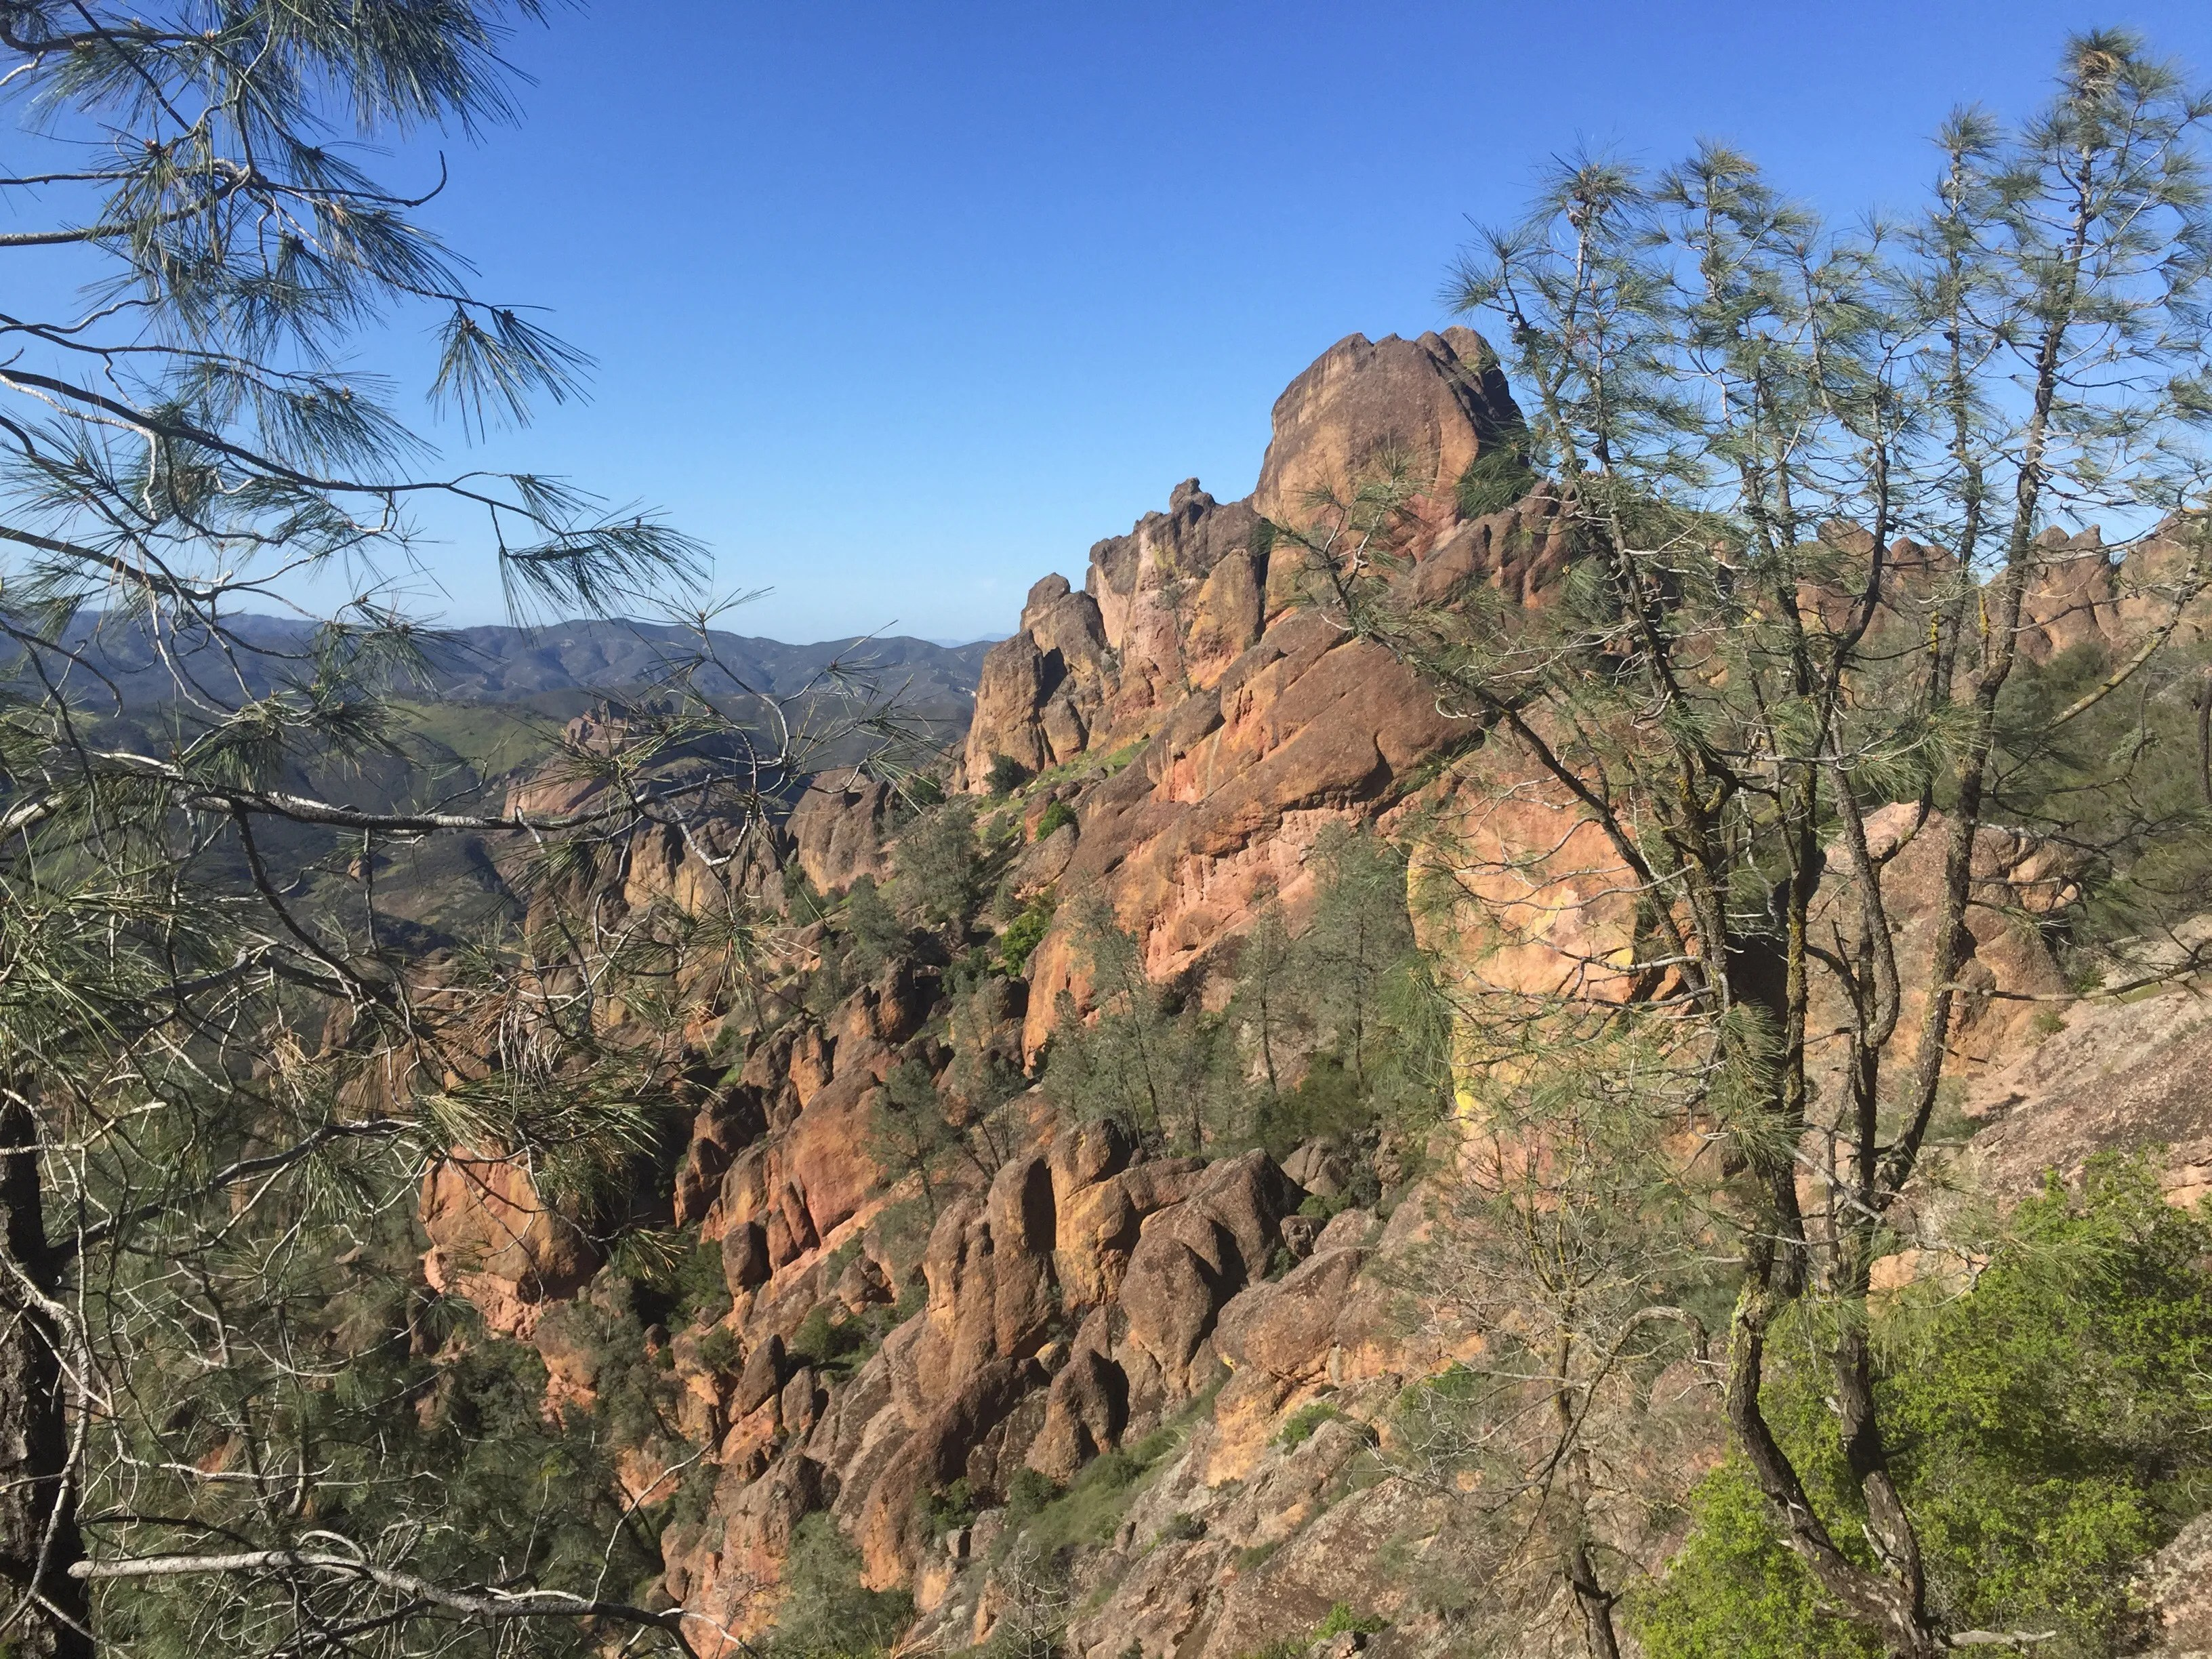 Switchbacks Episode #9: Parks that Live in the Shadows, ft. Pinnacles and Biscayne